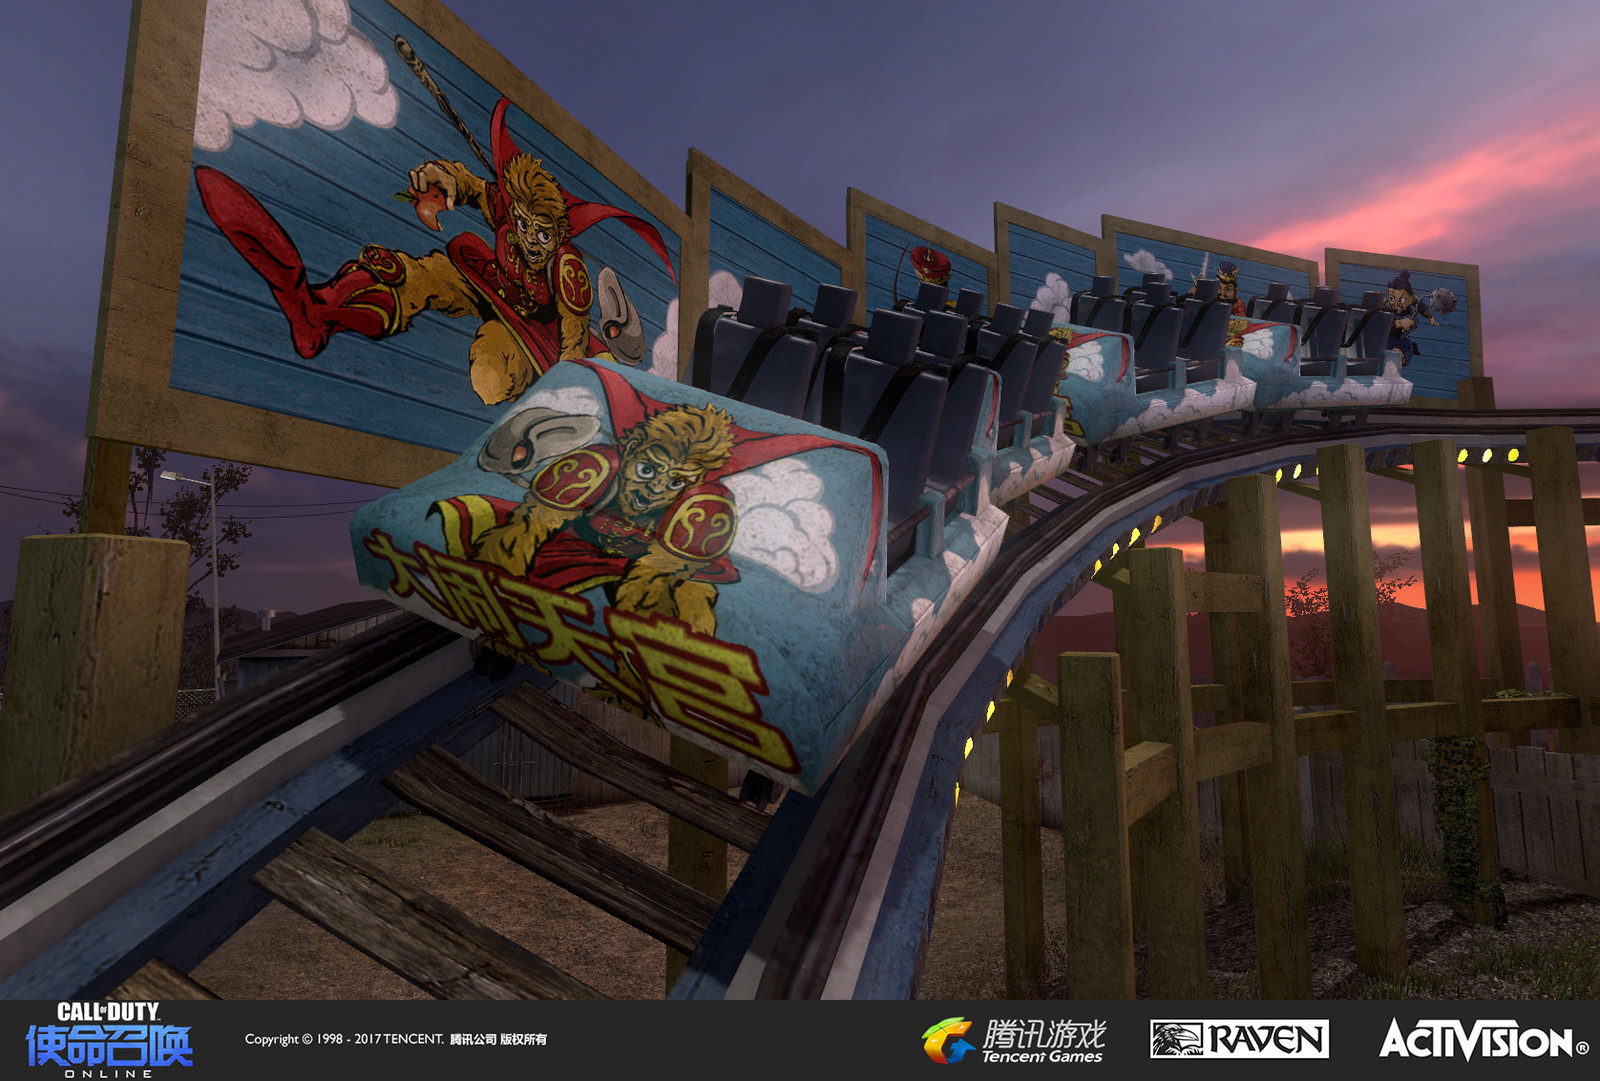 Carnival: The roller coaster was re-themed to comply with the Monkey King theme and I applied my atwork to the stalled cars on the tracks as well as to various points throughout the ride.